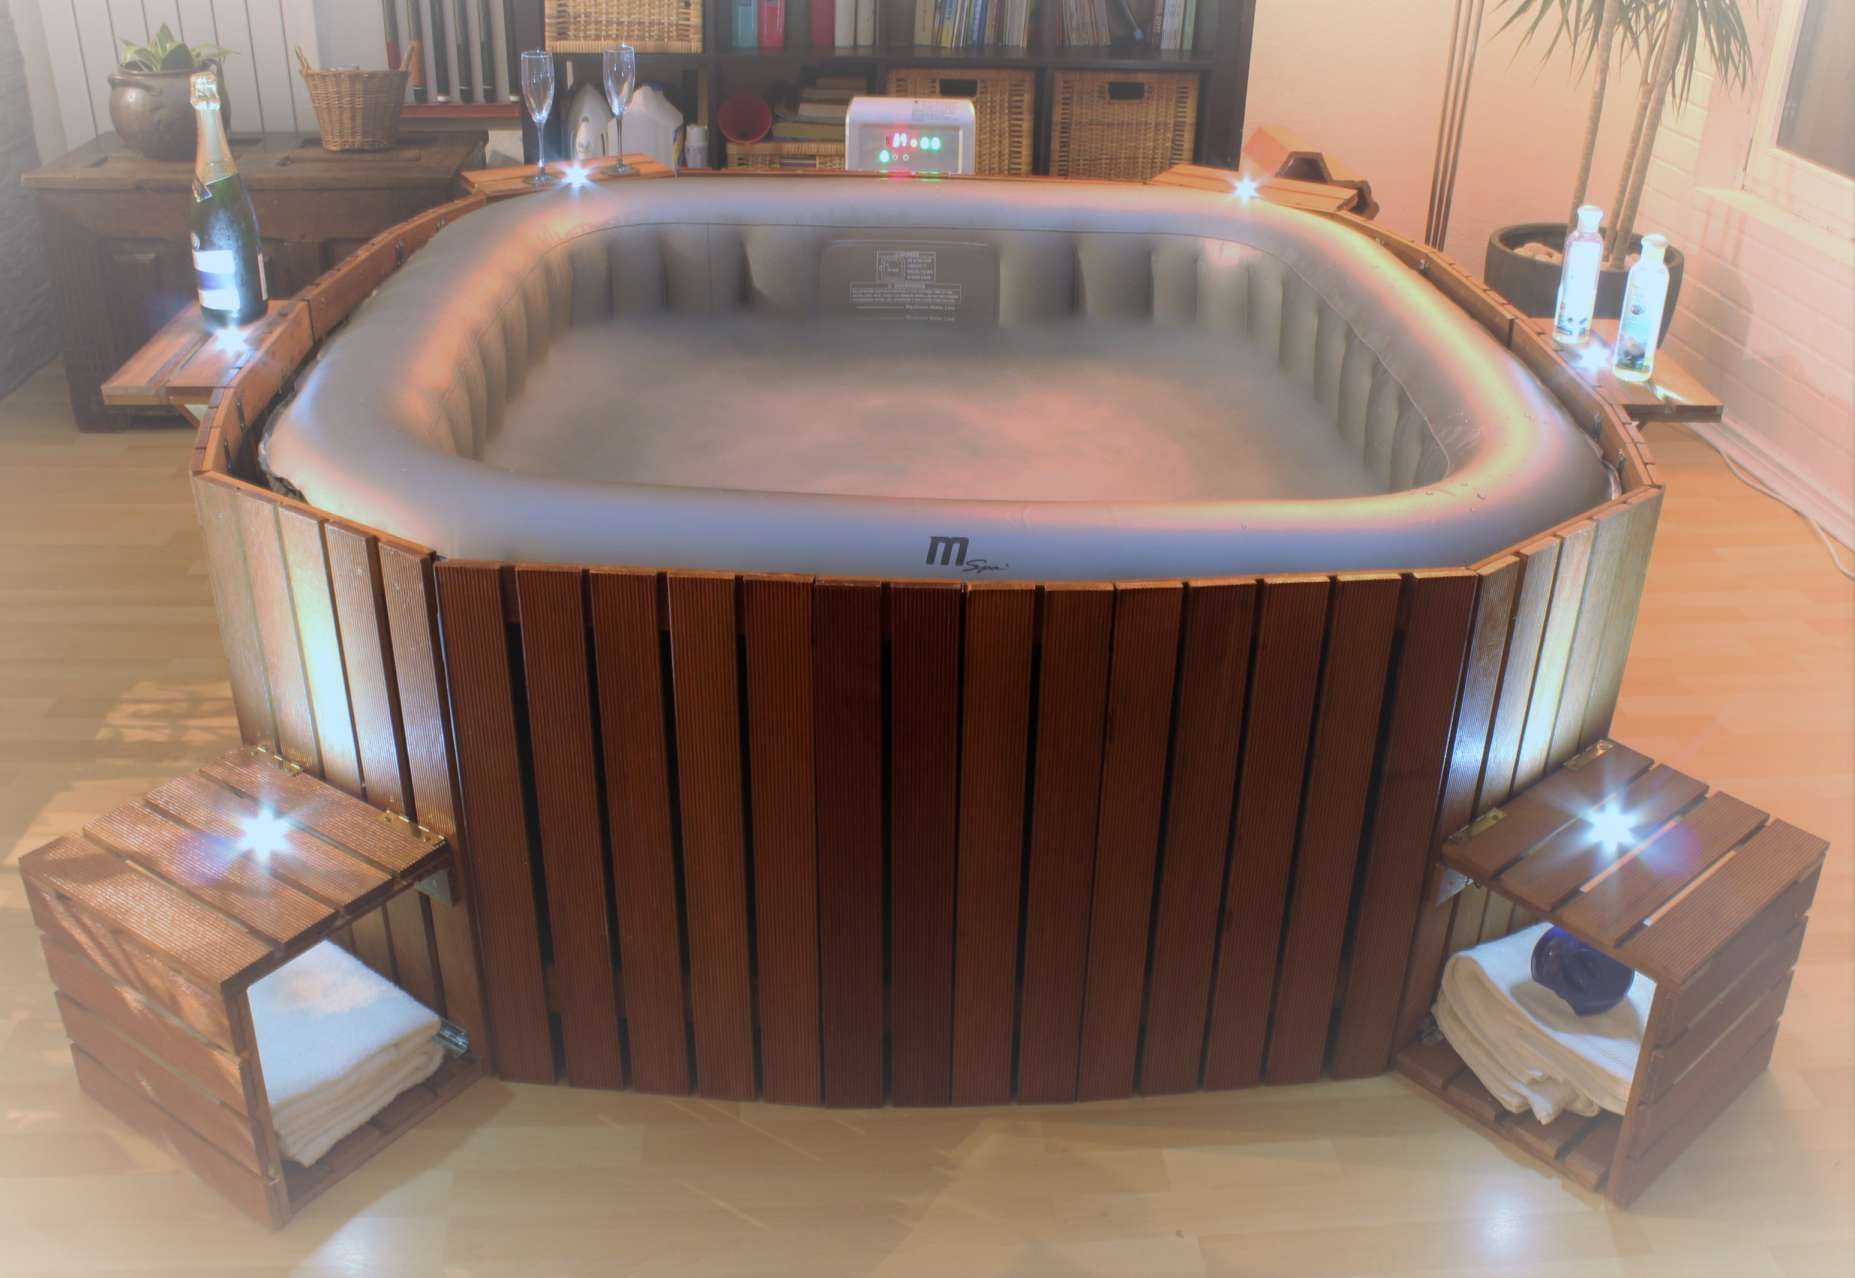 15 Structure Bois Pour Spa Gonflable Interior Garden Jacuzzi Pool Designs Design Pool Designs Inte In 2020 Hot Tub Deck Luxury Pools Indoor Hot Tub